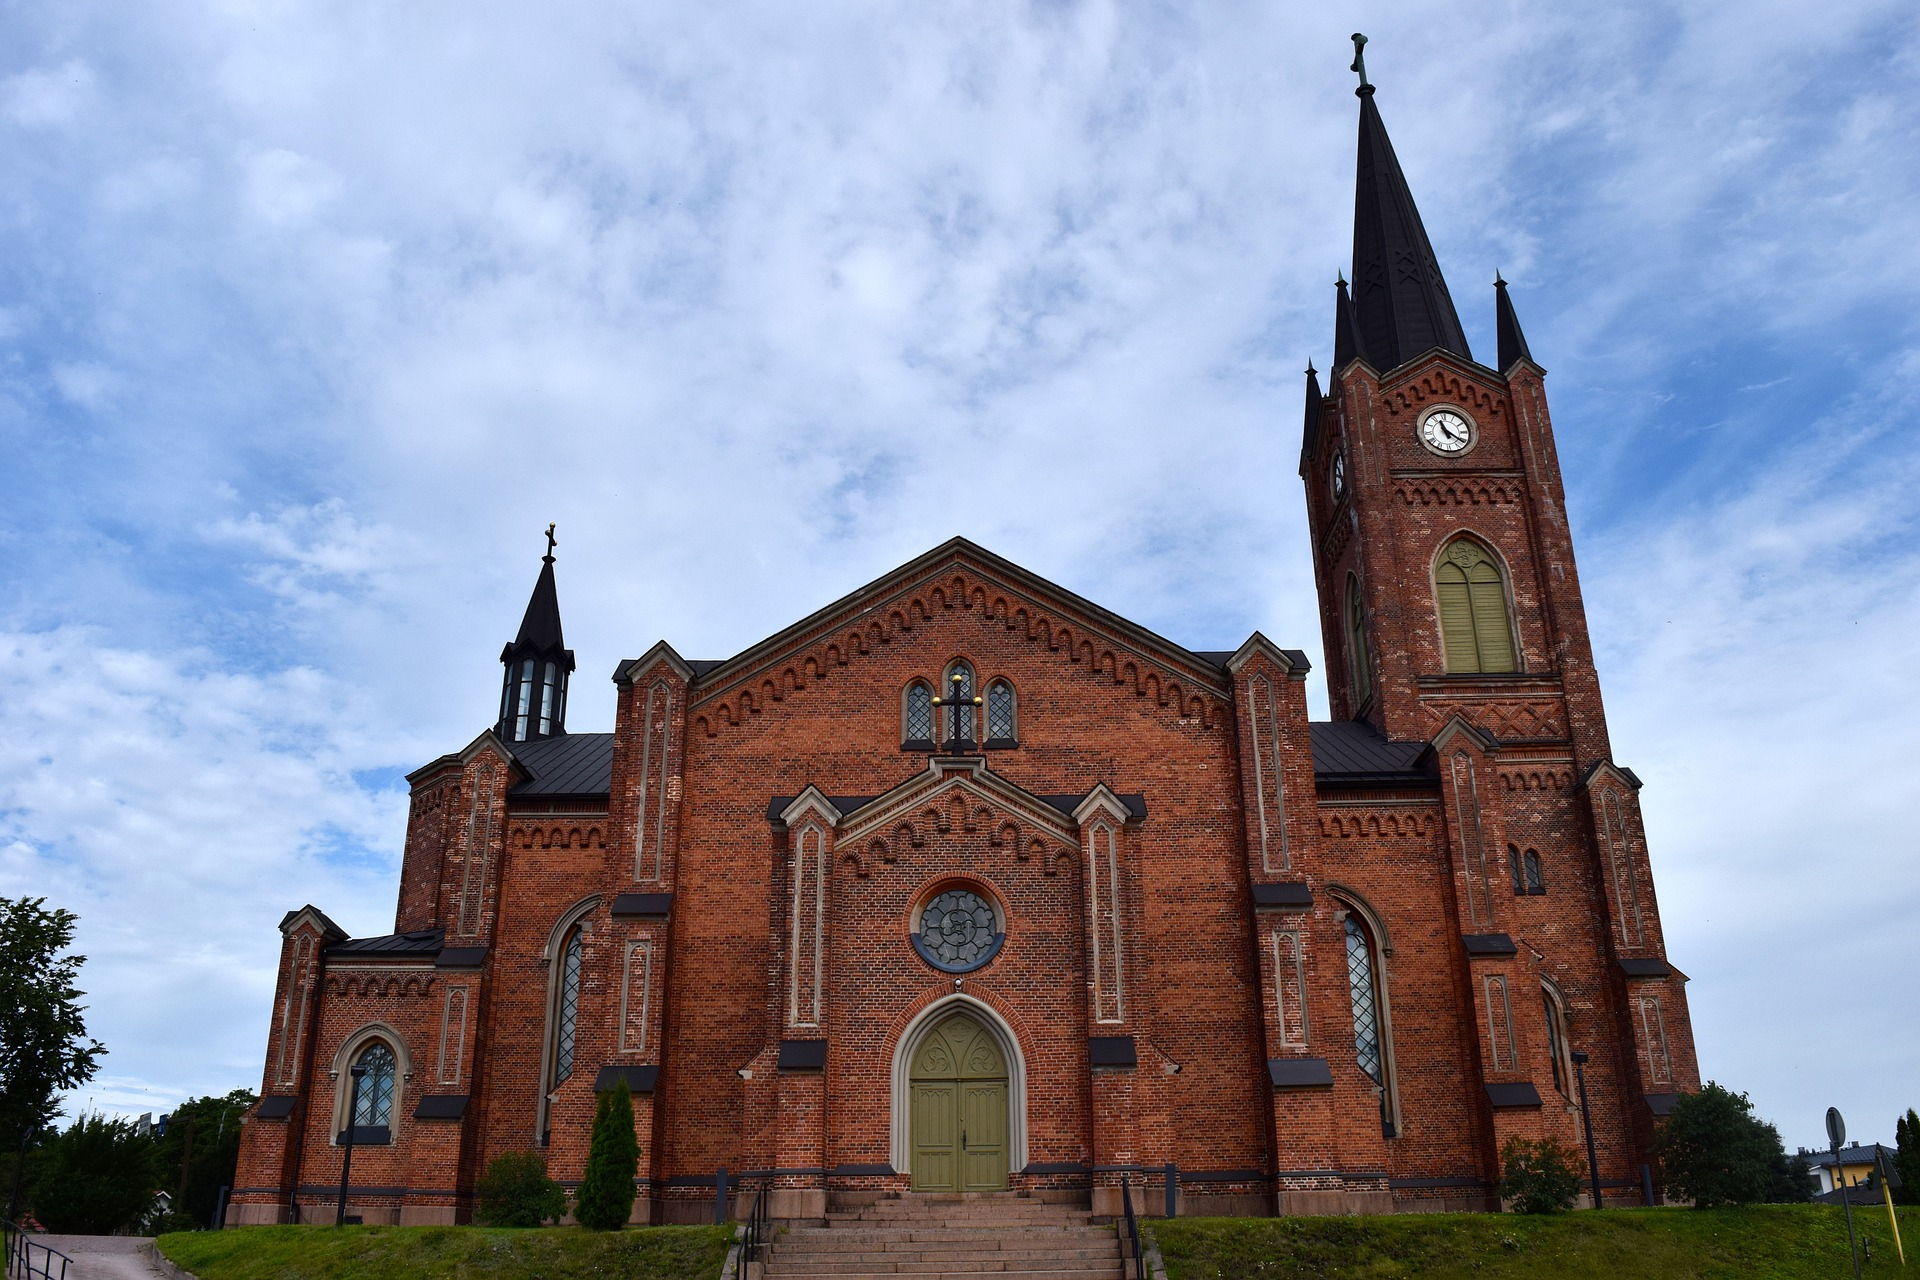 Old Church, Architecture, Church, Construction, Holy, HQ Photo